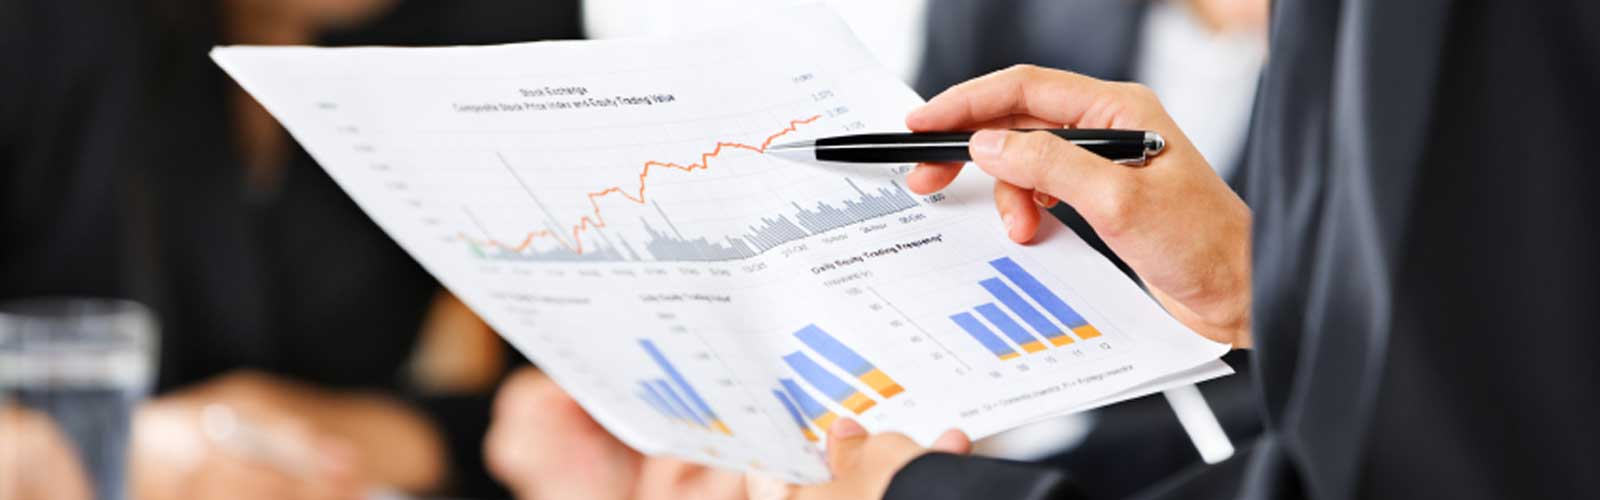 How To Manage Self Business Accounts - Get The Experts Advice